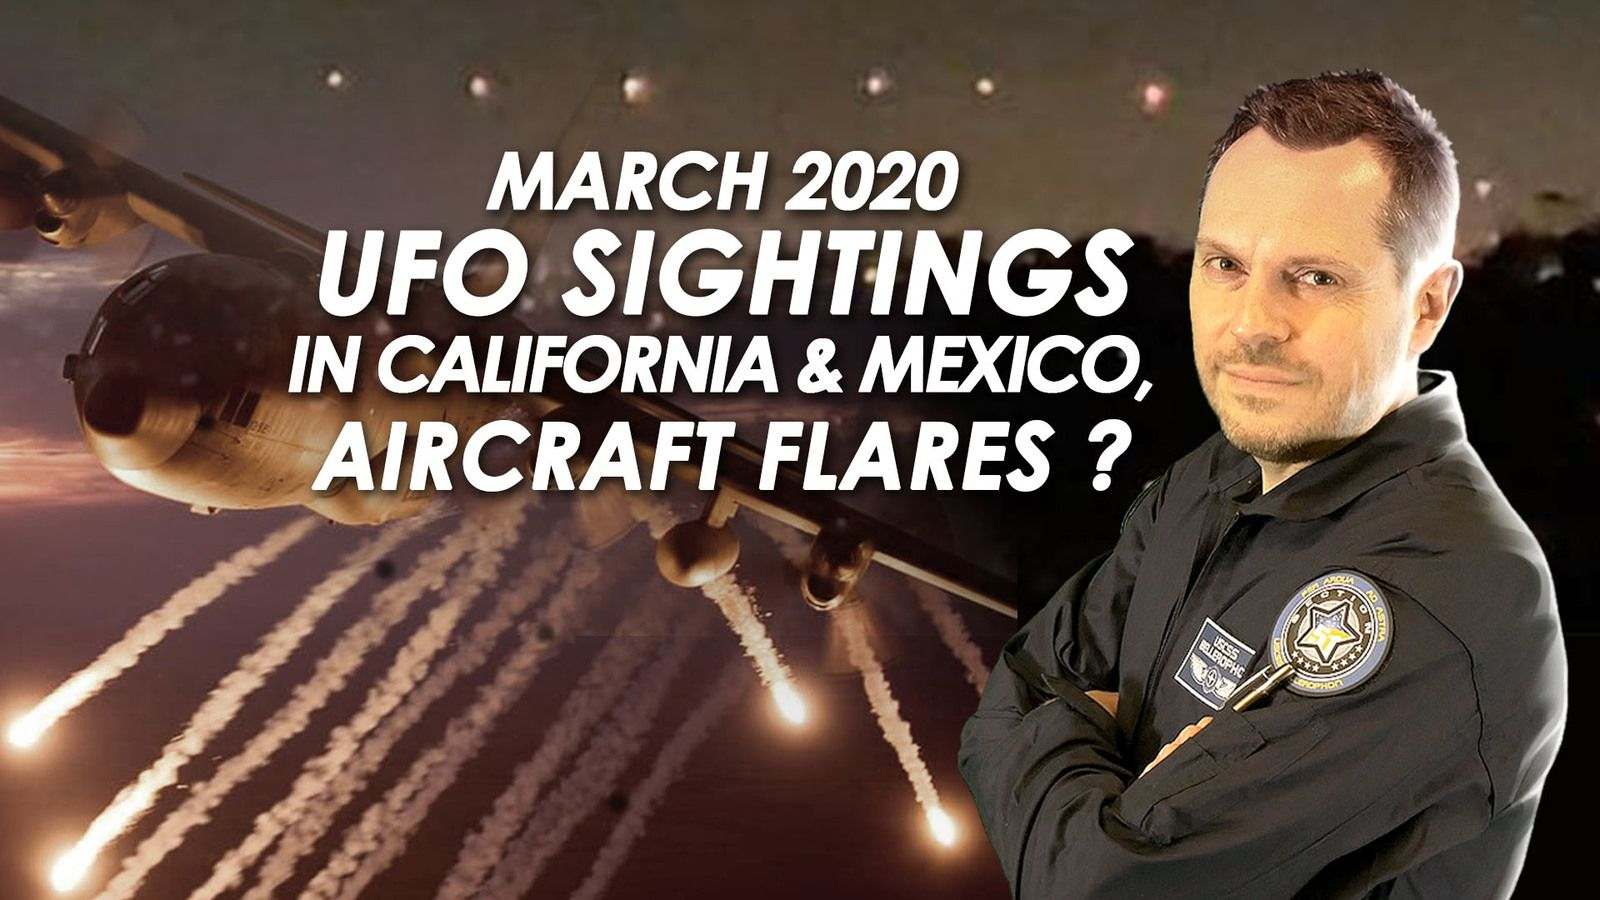 👽 Multiple UFO Sightings Reported in Southern California & Tijuana, Mexico - Aircraft Flares ?